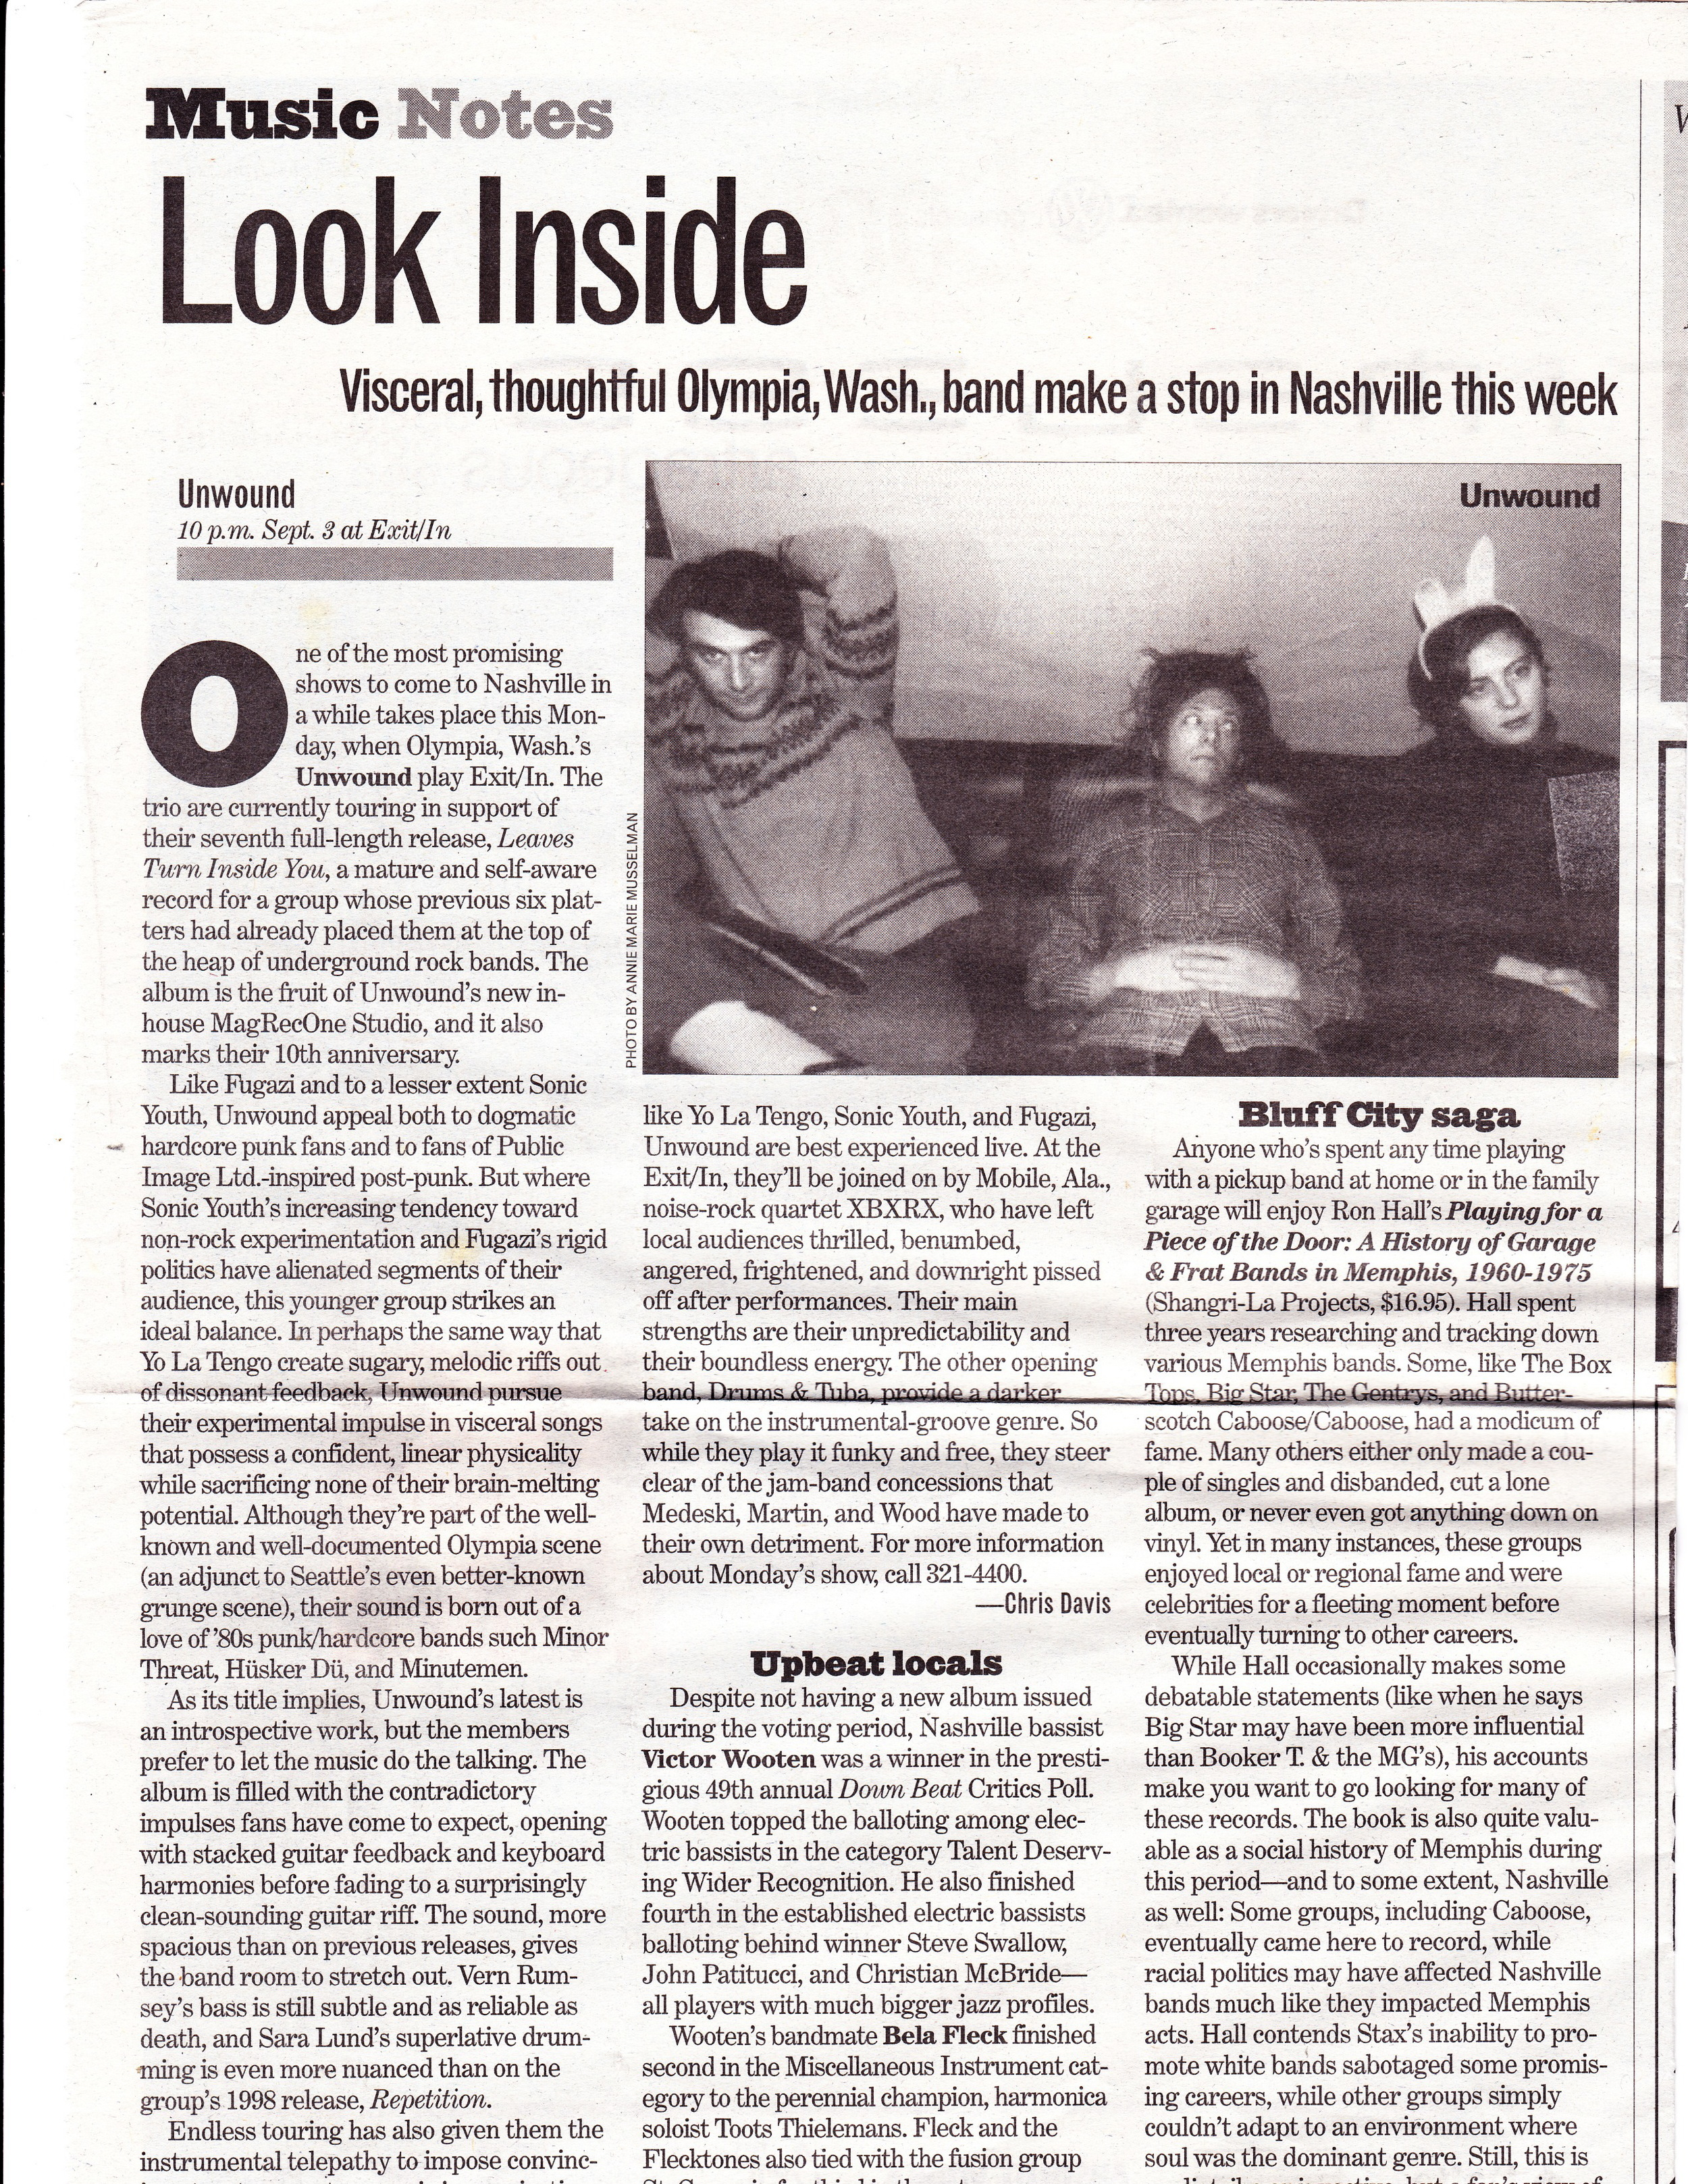 Nashville Scene Aug 30, 2001 Show Preview